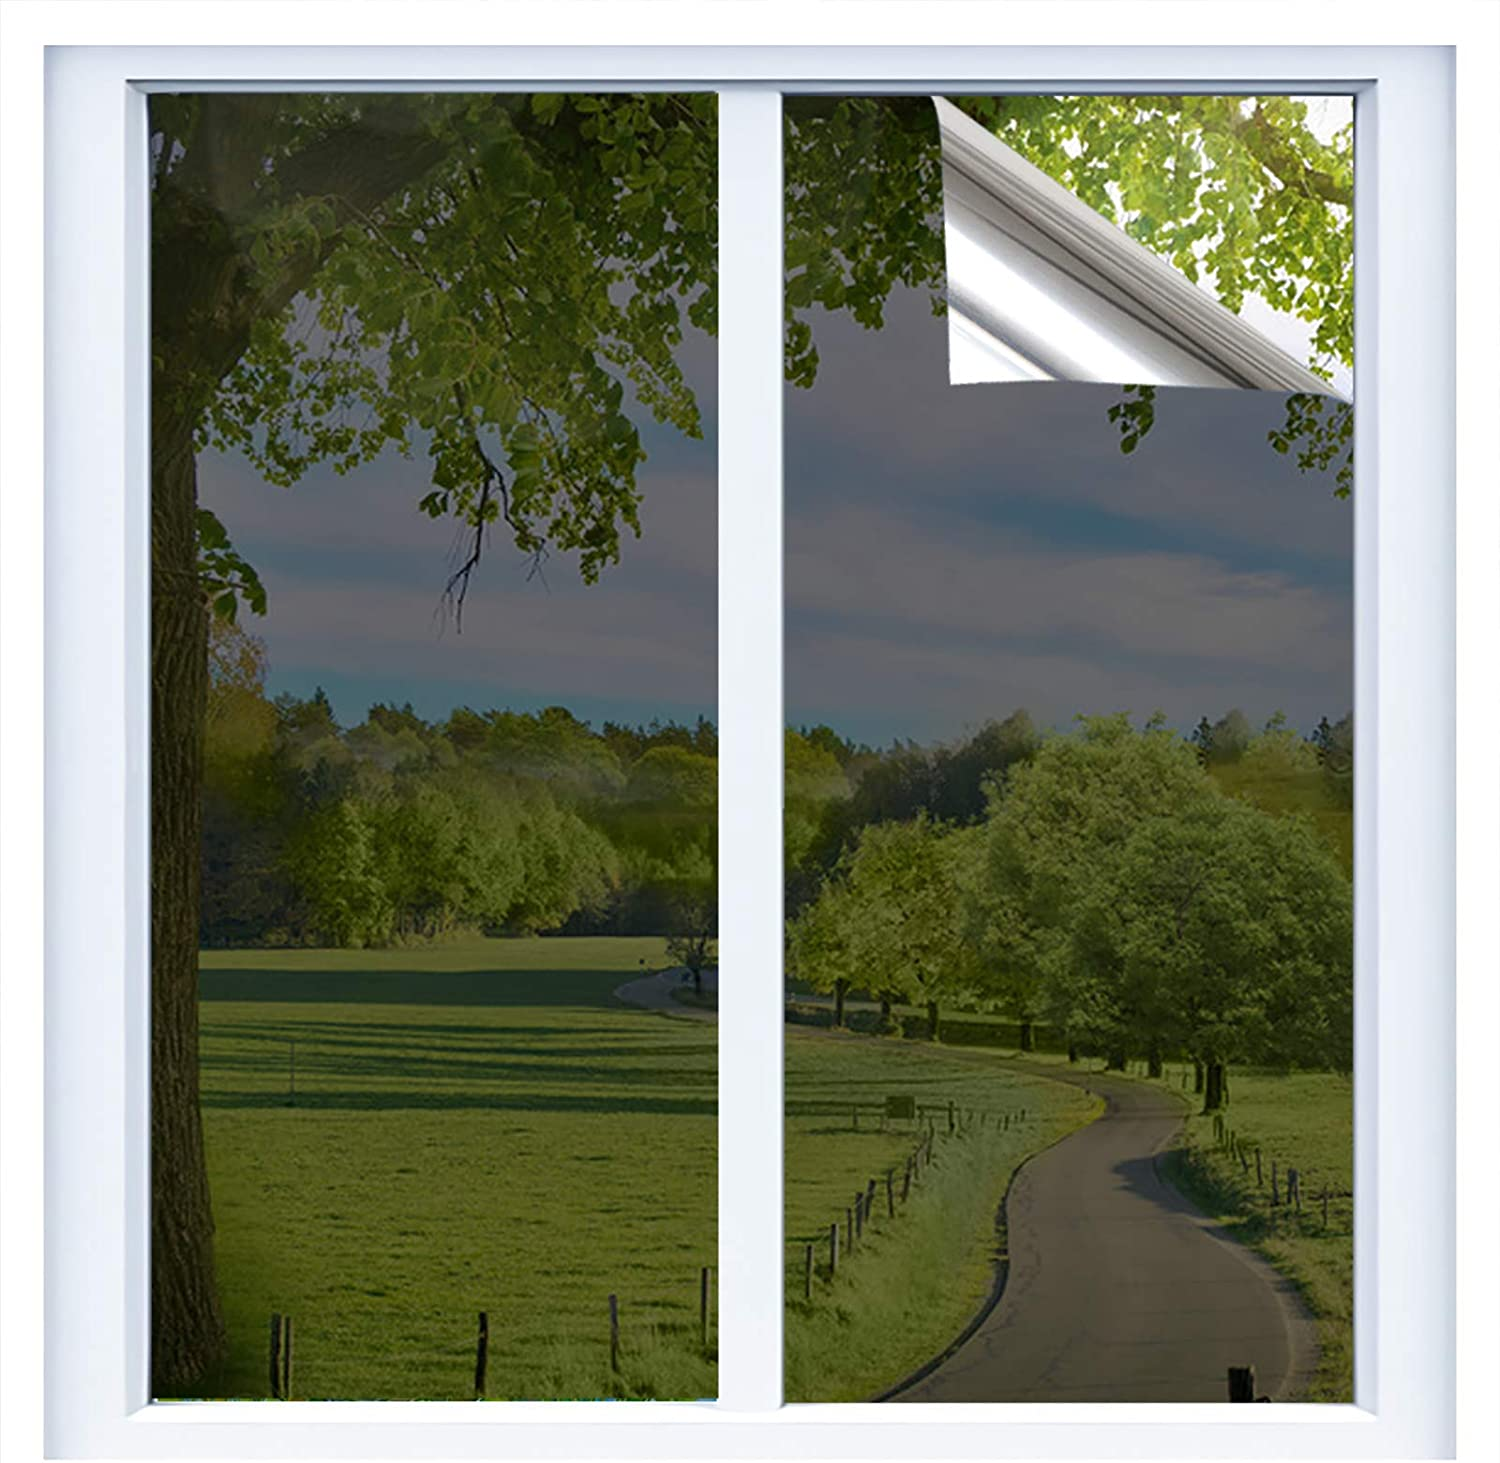 RTTECH Window Film Privacy One Way Mirror Window Tint for Home Sun UV Blocking Heat Control Daytime Privacy Solar Film Static Cling for Residential Office 35.6x78.8 Inches Black-Silver